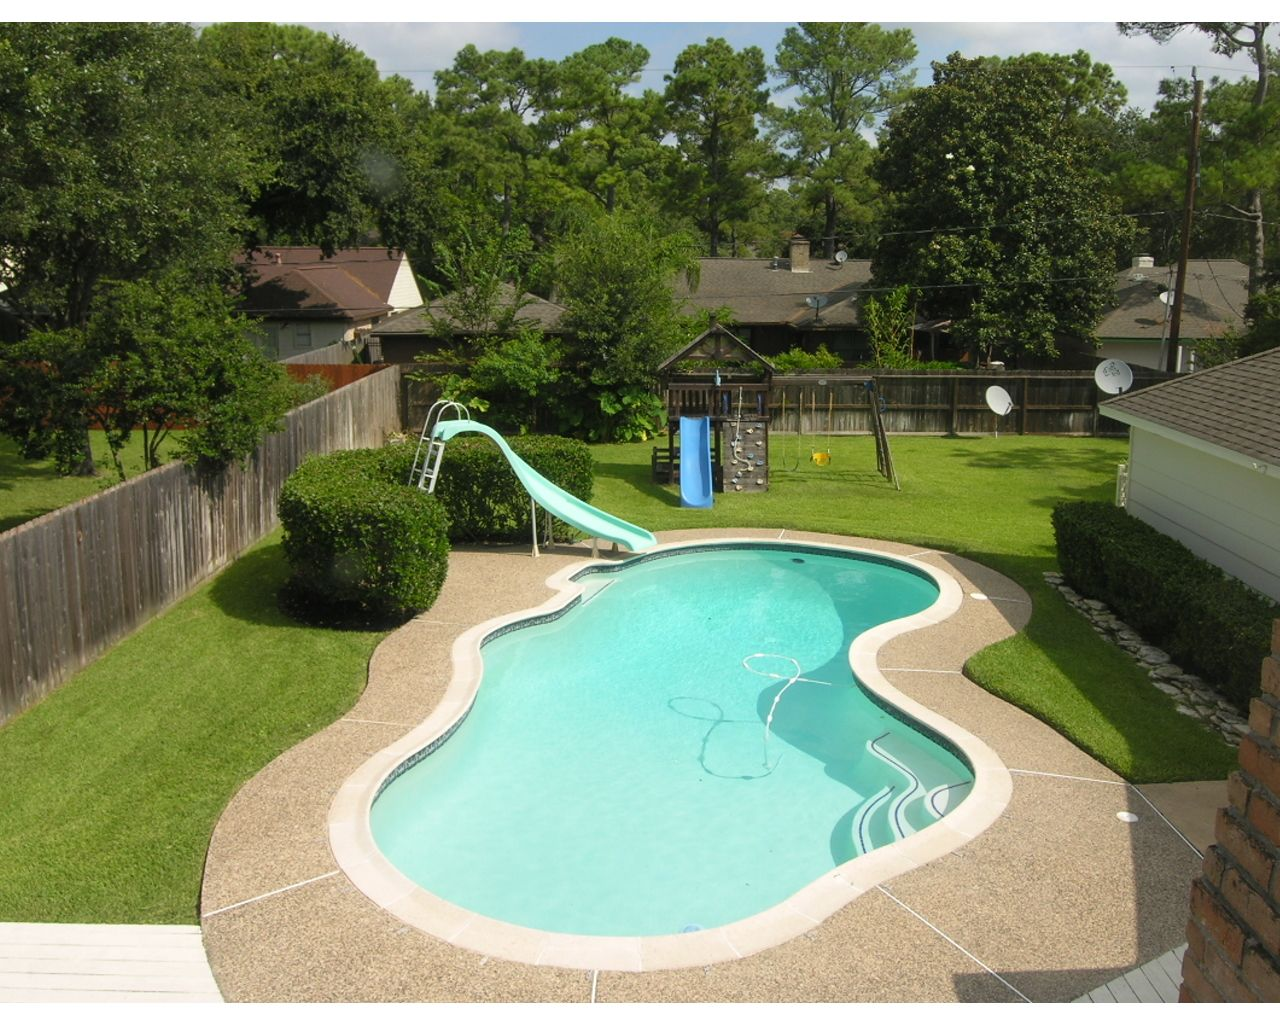 Backyard pools great view of large backyard pool but for Large swimming pool designs